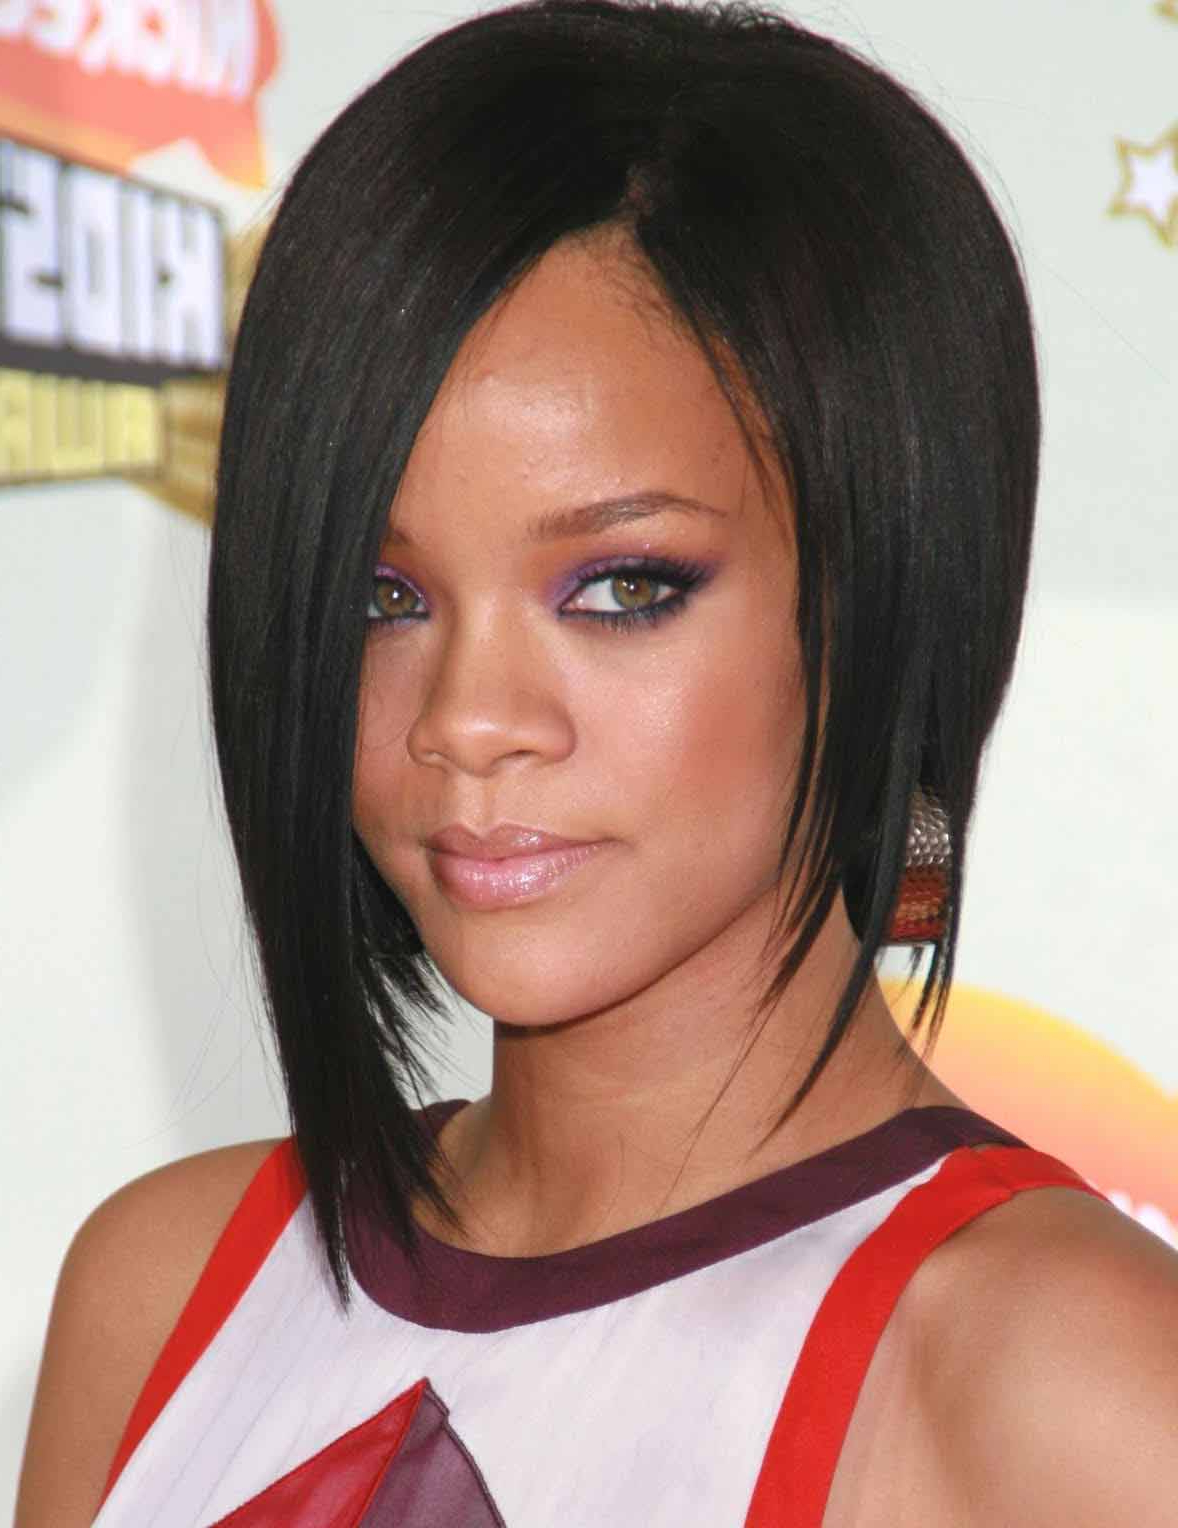 Best Hairstyles For Big Foreheads Pertaining To Recent Medium Hairstyles For High Foreheads (View 4 of 20)